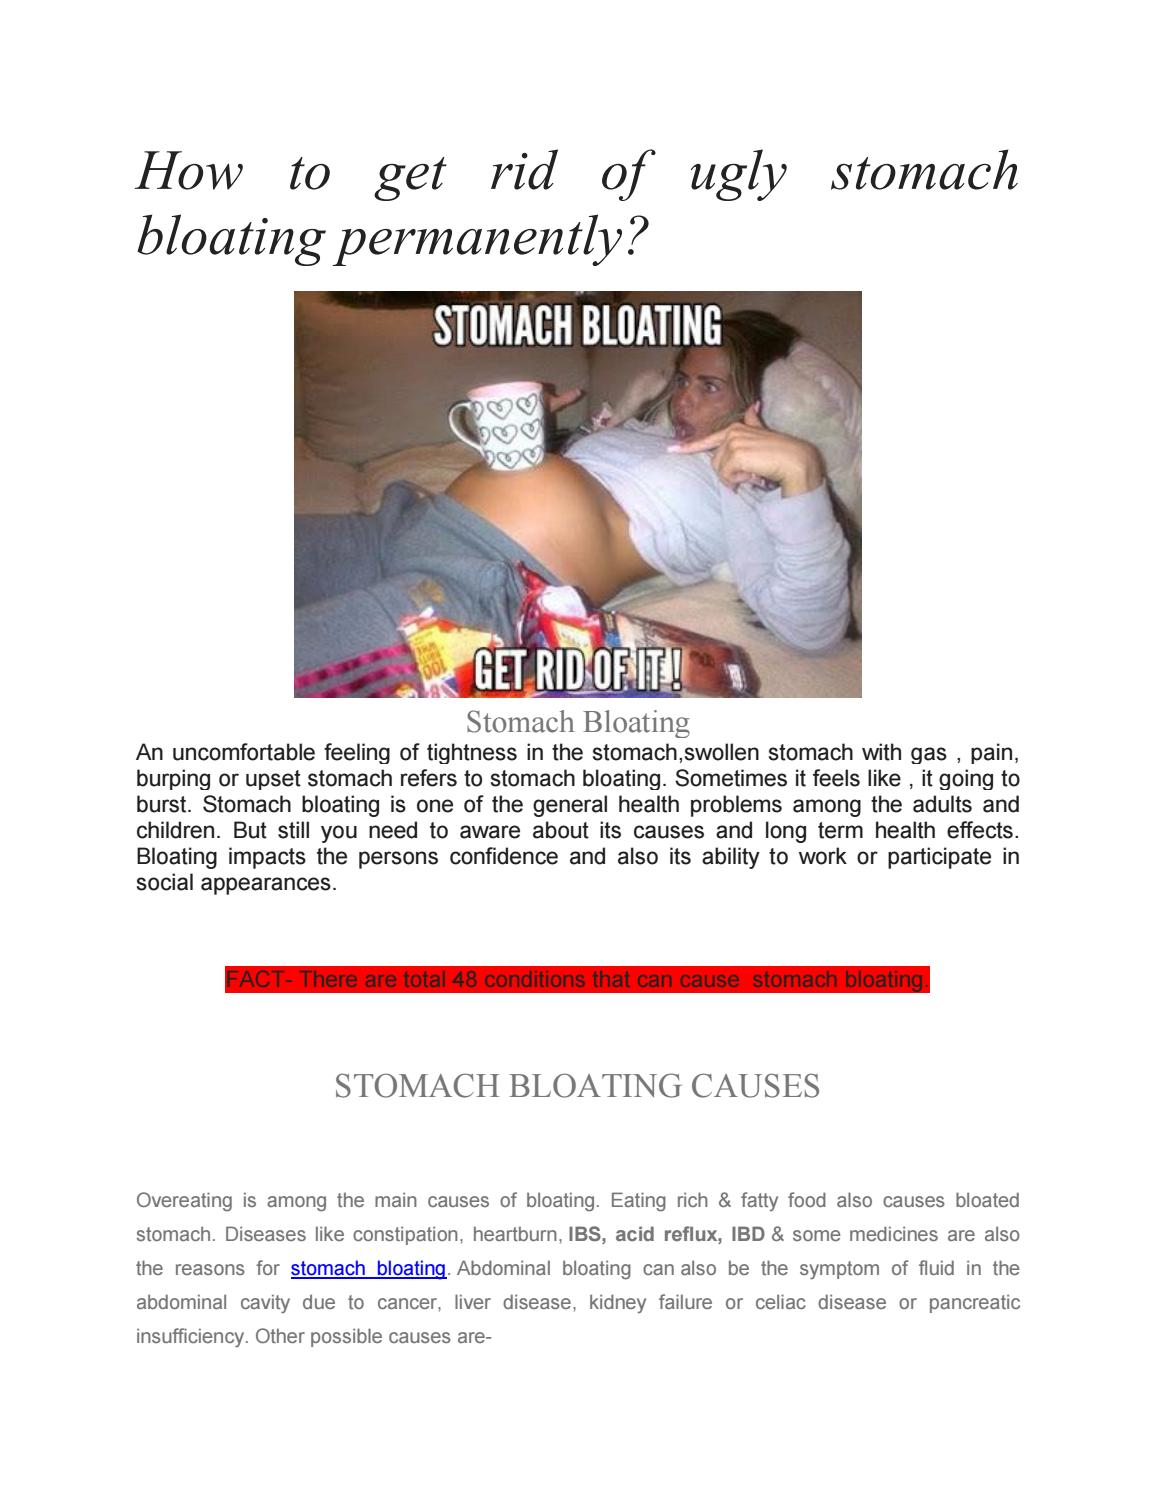 How To Get Rid Of Ugly Stomach Bloating Permanently By Sarah22 Issuu